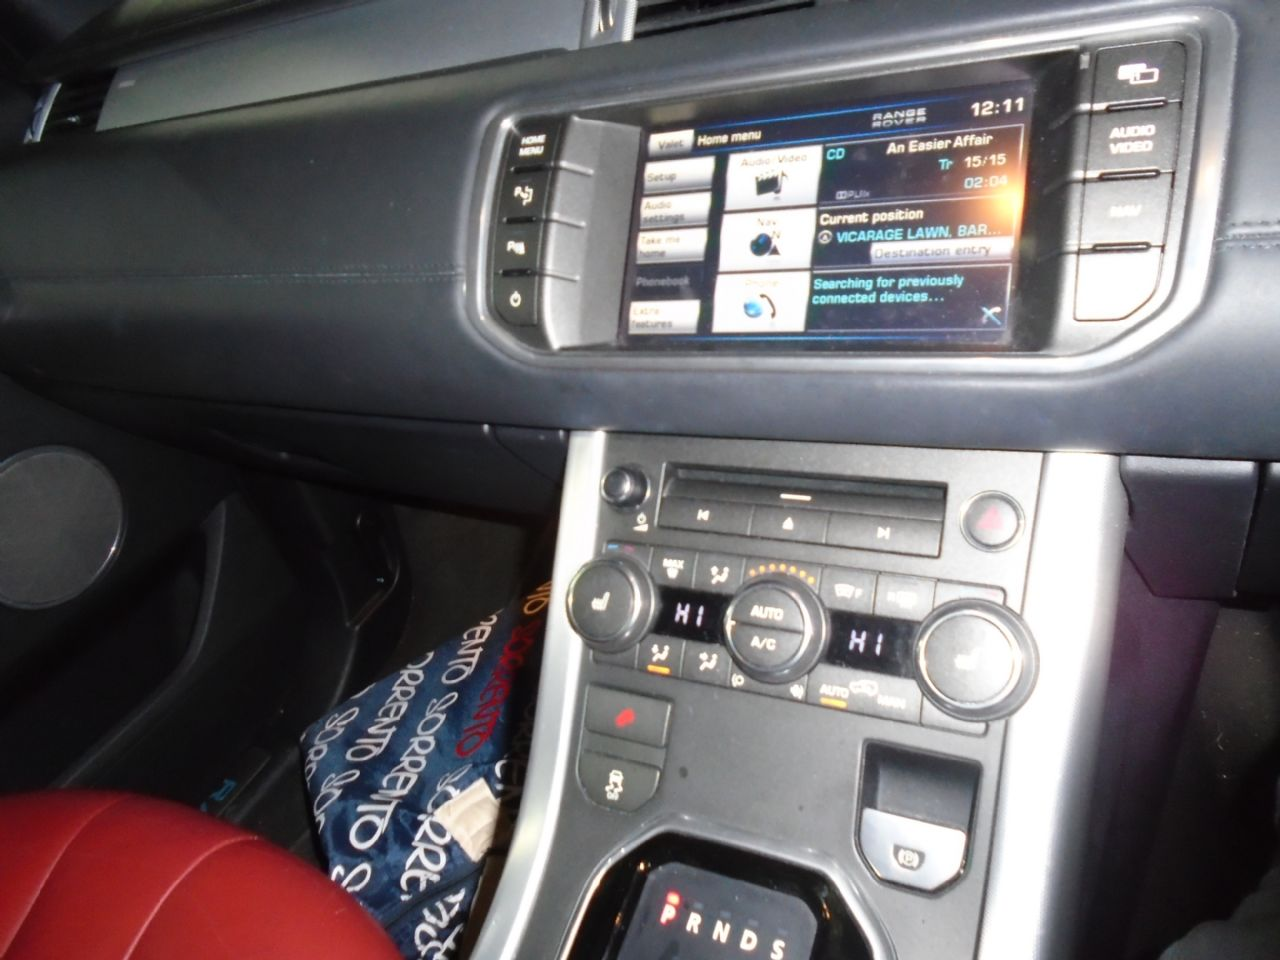 LAND ROVER RANGE ROVER EVOQUE SD4 190HP Auto 4WD dynamic \lux pack - Picture 8